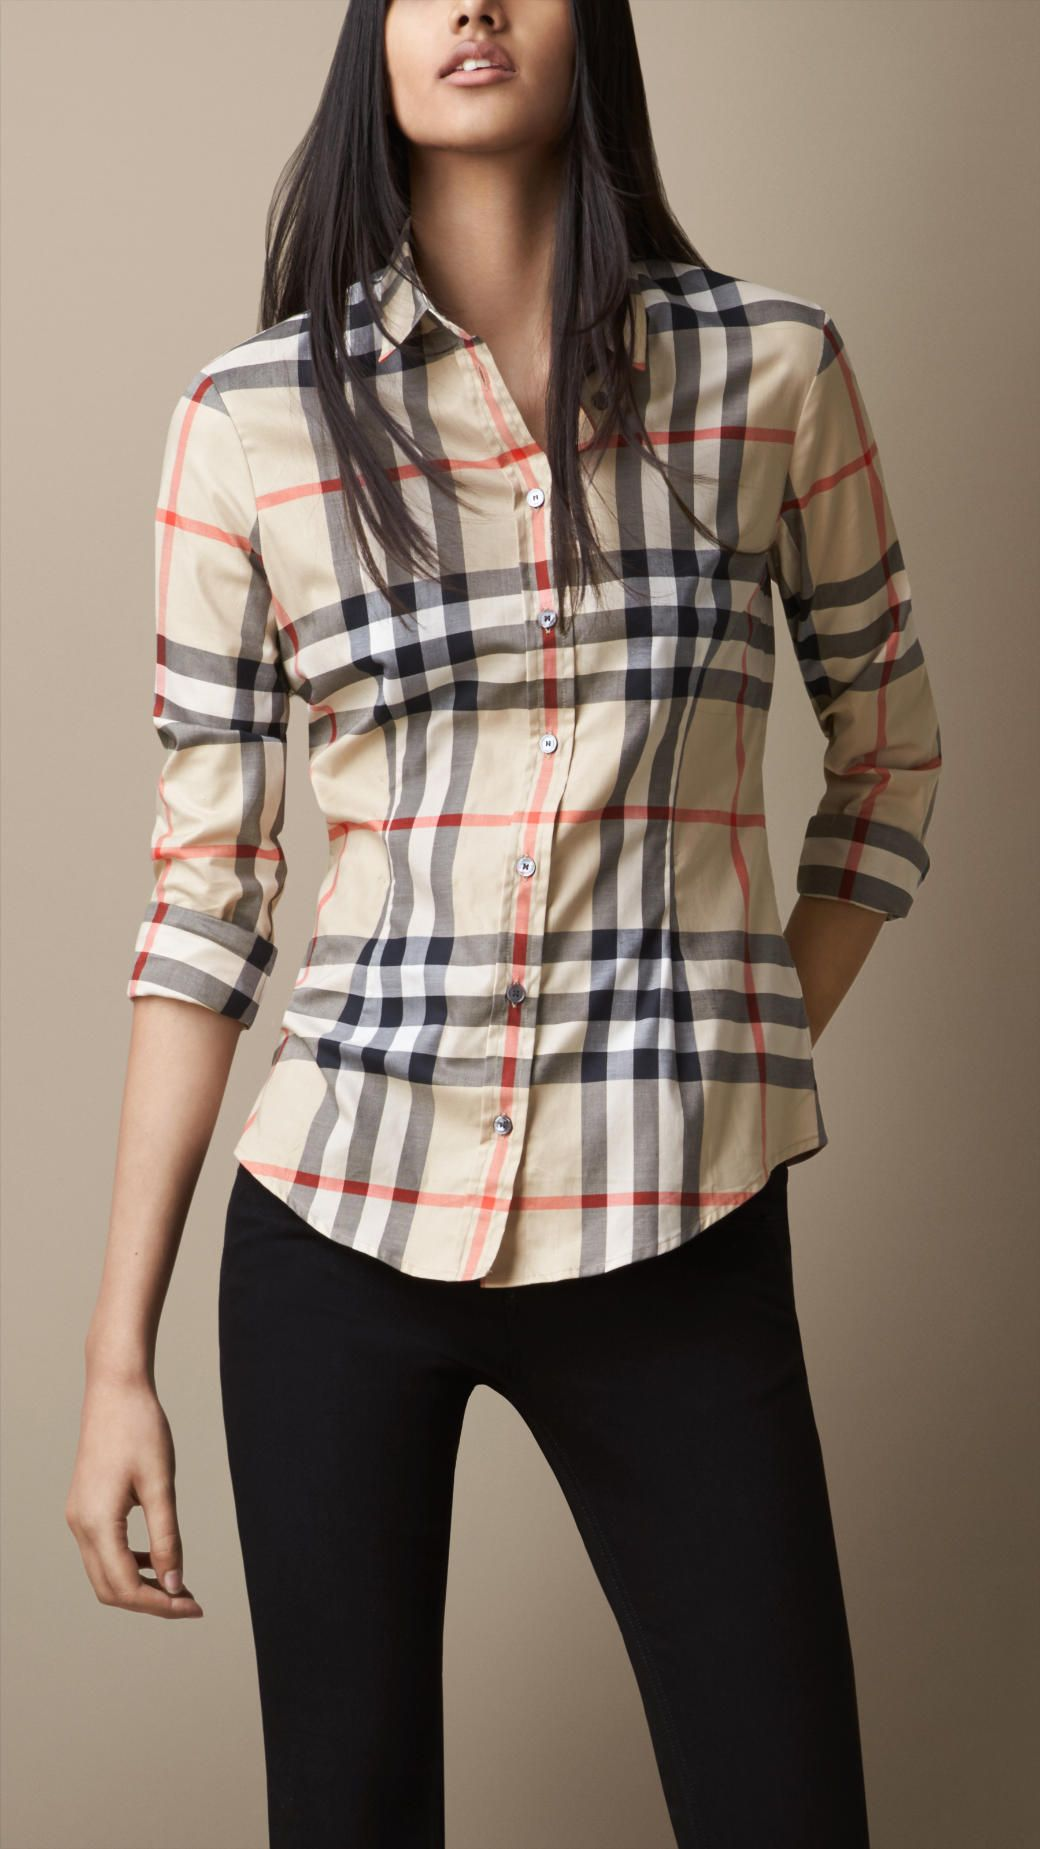 Bluse in Exploded Check | Burberry 250,-- at.burberry.com